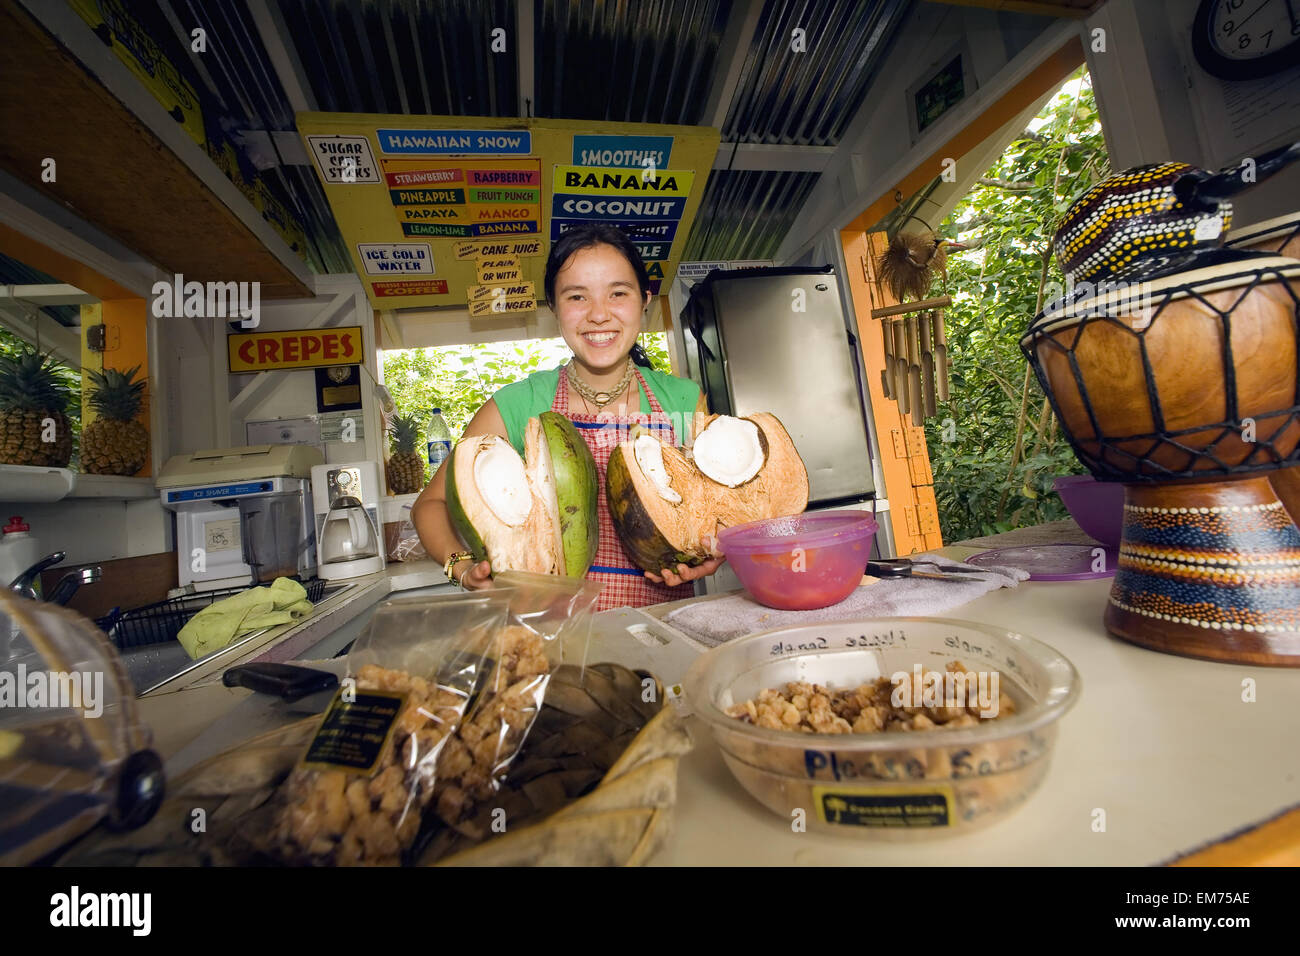 Hawaii, Maui, Hana, Fruit And Souvenir Stand At Huelo Lookout, Girl Holding Coconuts Behind The Counter. Stock Photo